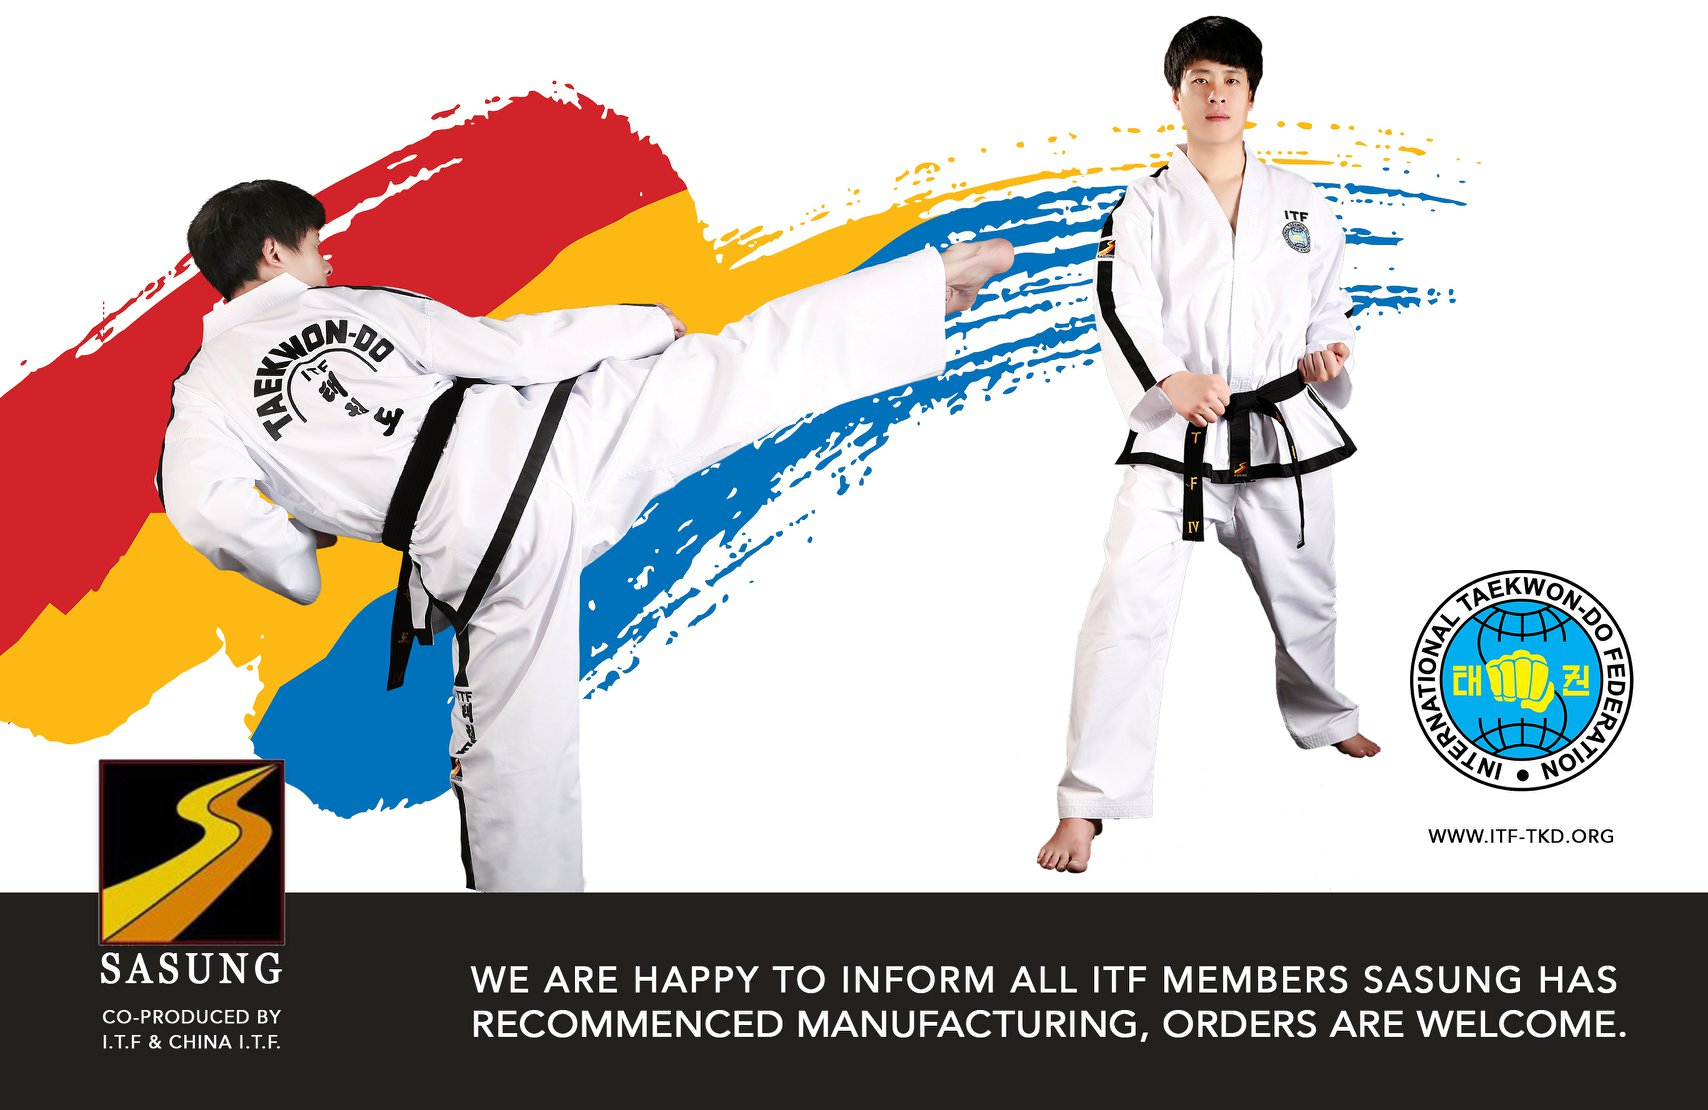 Sasung Has Recommenced Manufacturing And Orders Are intended for National Retail Federation 4 5 4 Calendar